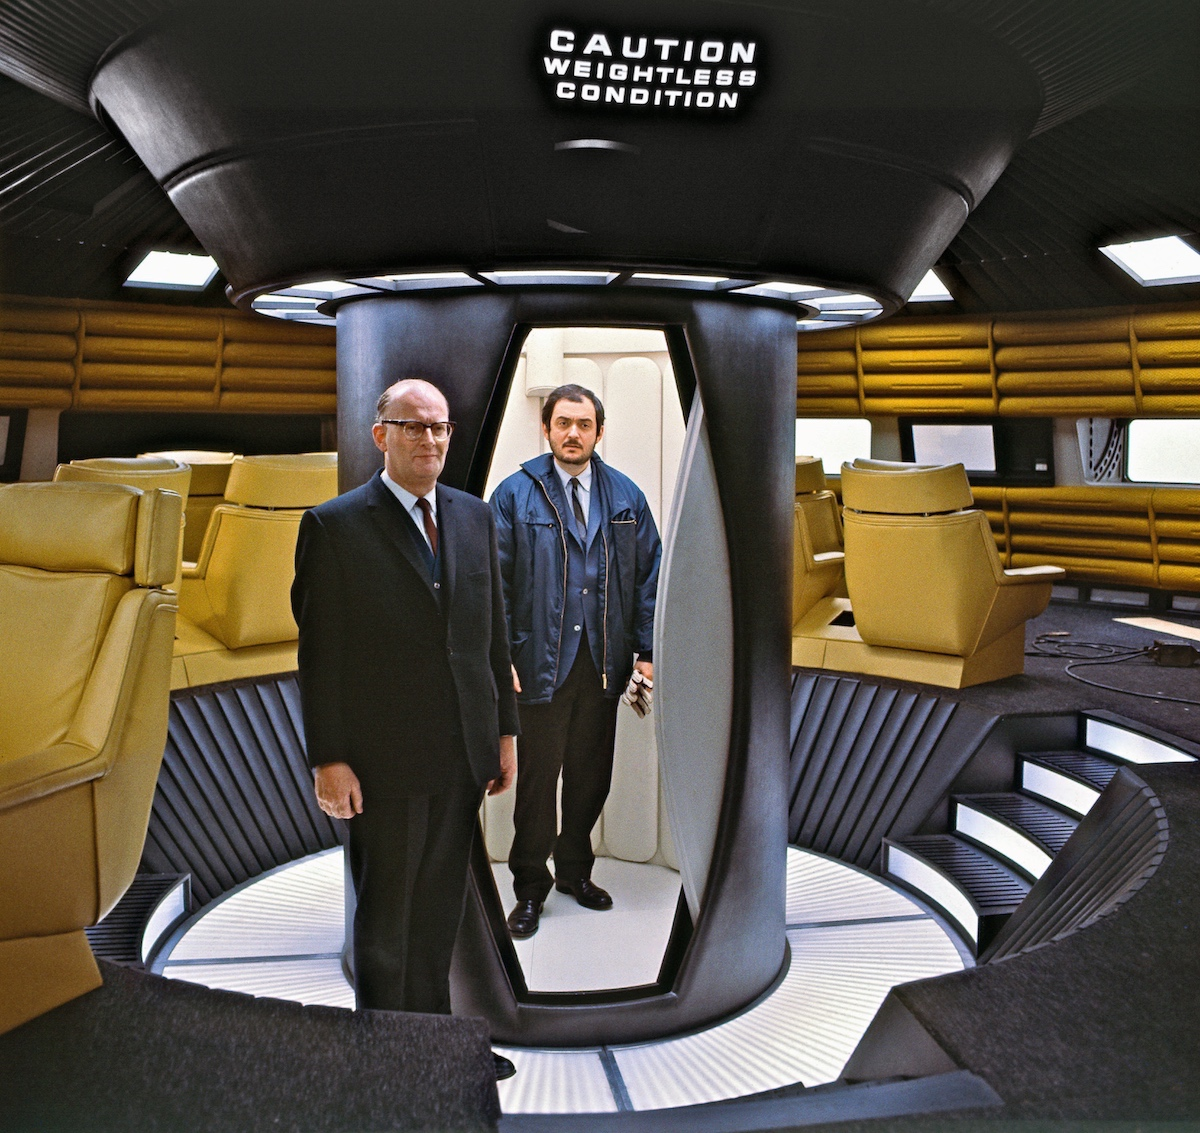 Stanley Kubrick and Arthur C. Clarke in 2001: A Space Odyssey (1968)